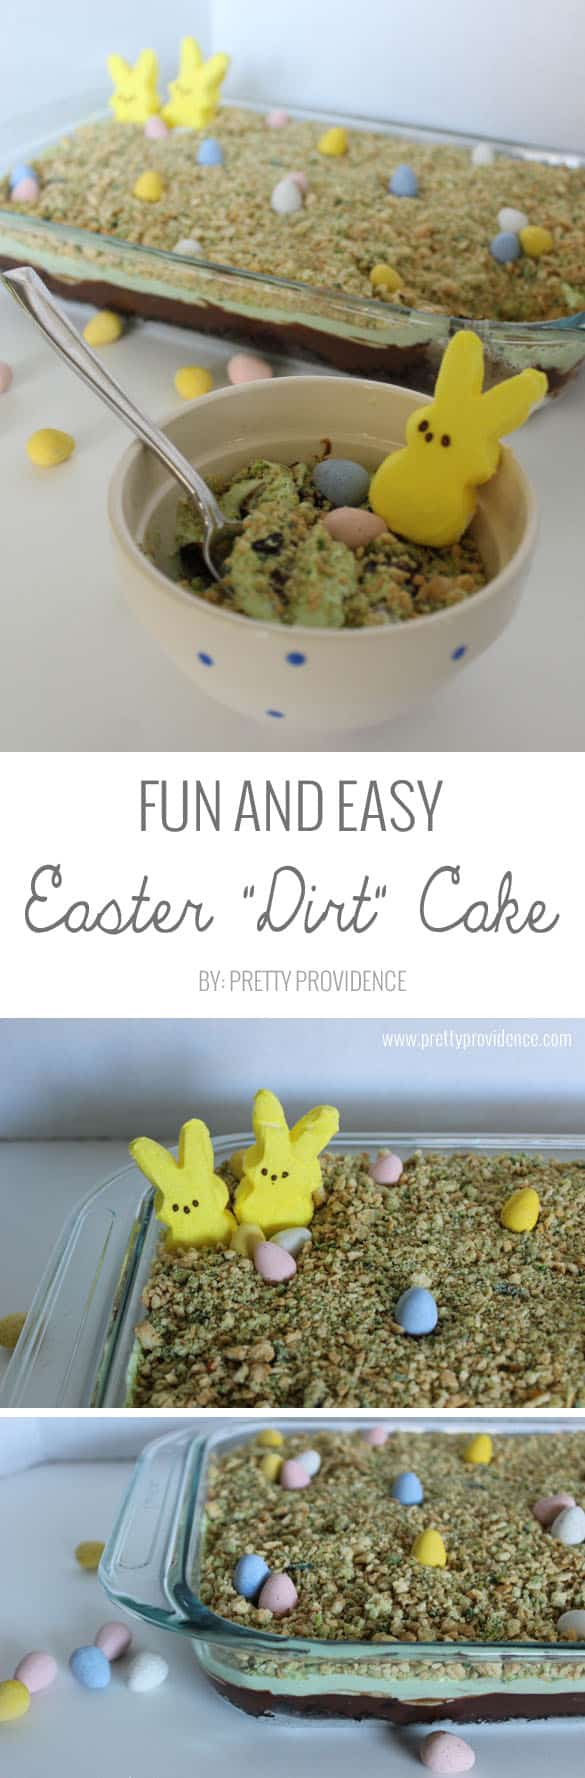 I love this fun and easy Easter dirt cake! I mean, what kid wouldn't love this combination?